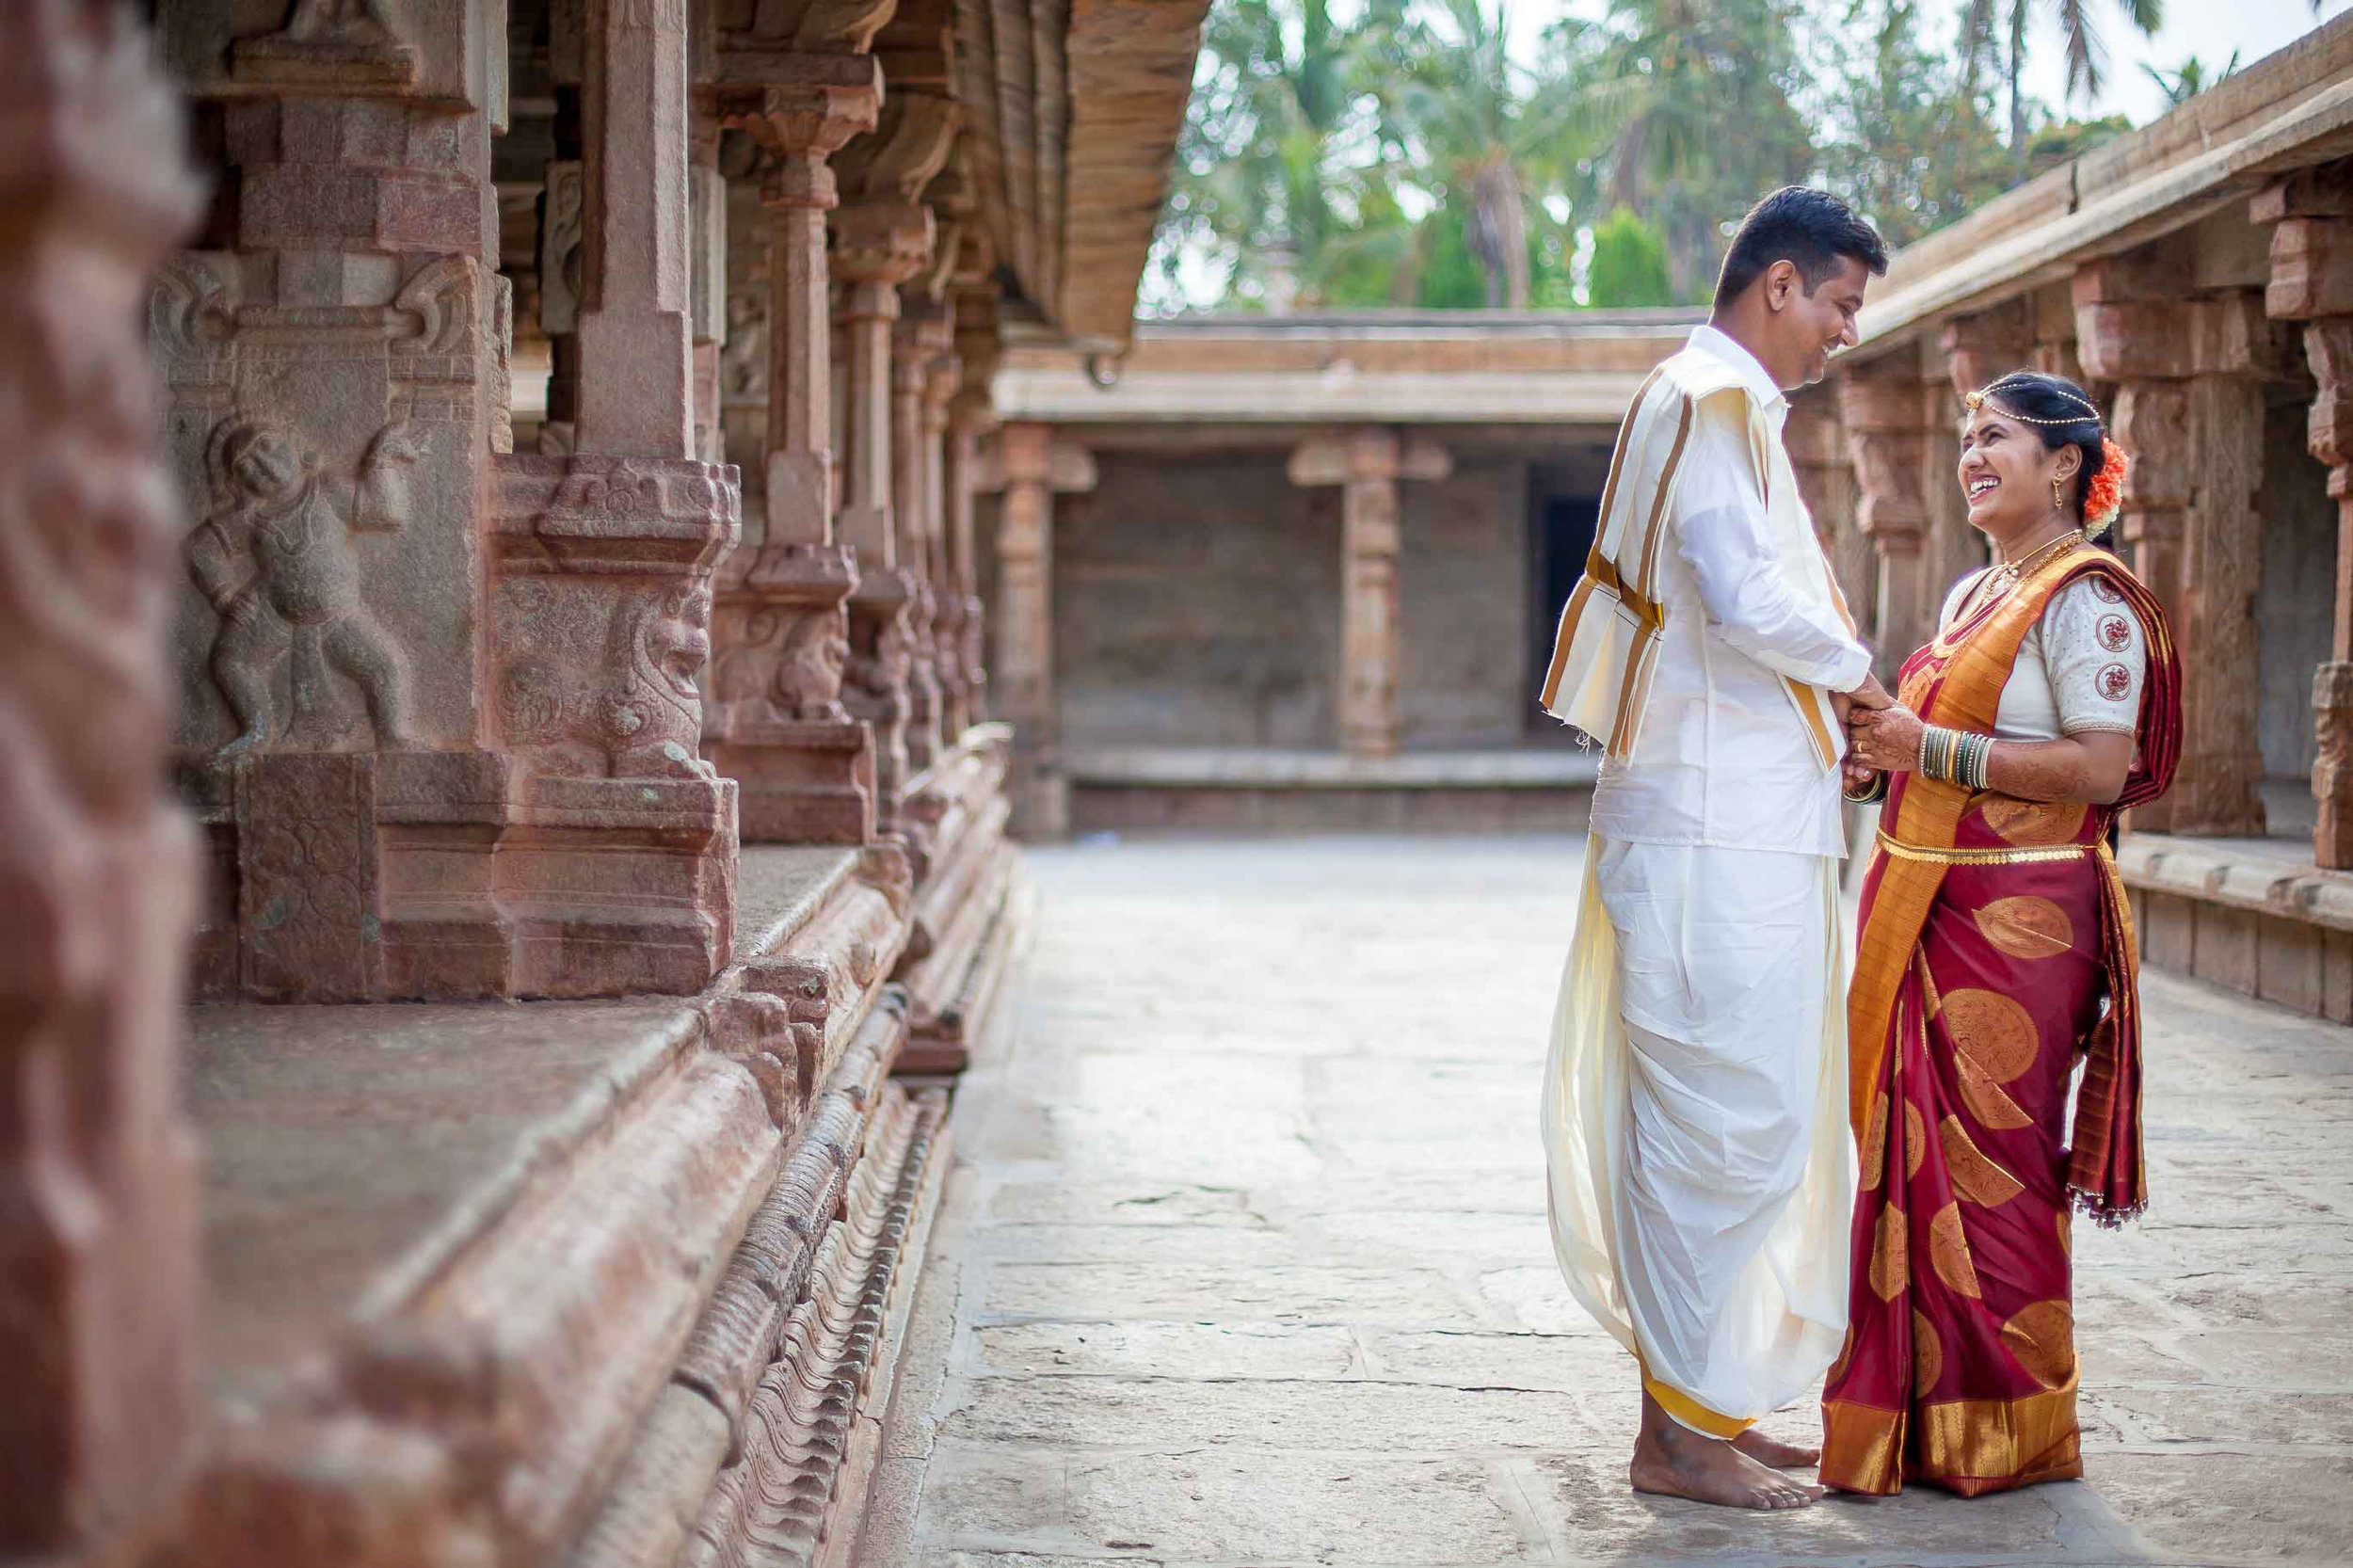 Pixel-Chronicles-Basavaraj_Pooja-bhoganandishwara-temple-Candid-Wedding-Photography-Couple-Photoshoot-5.jpg